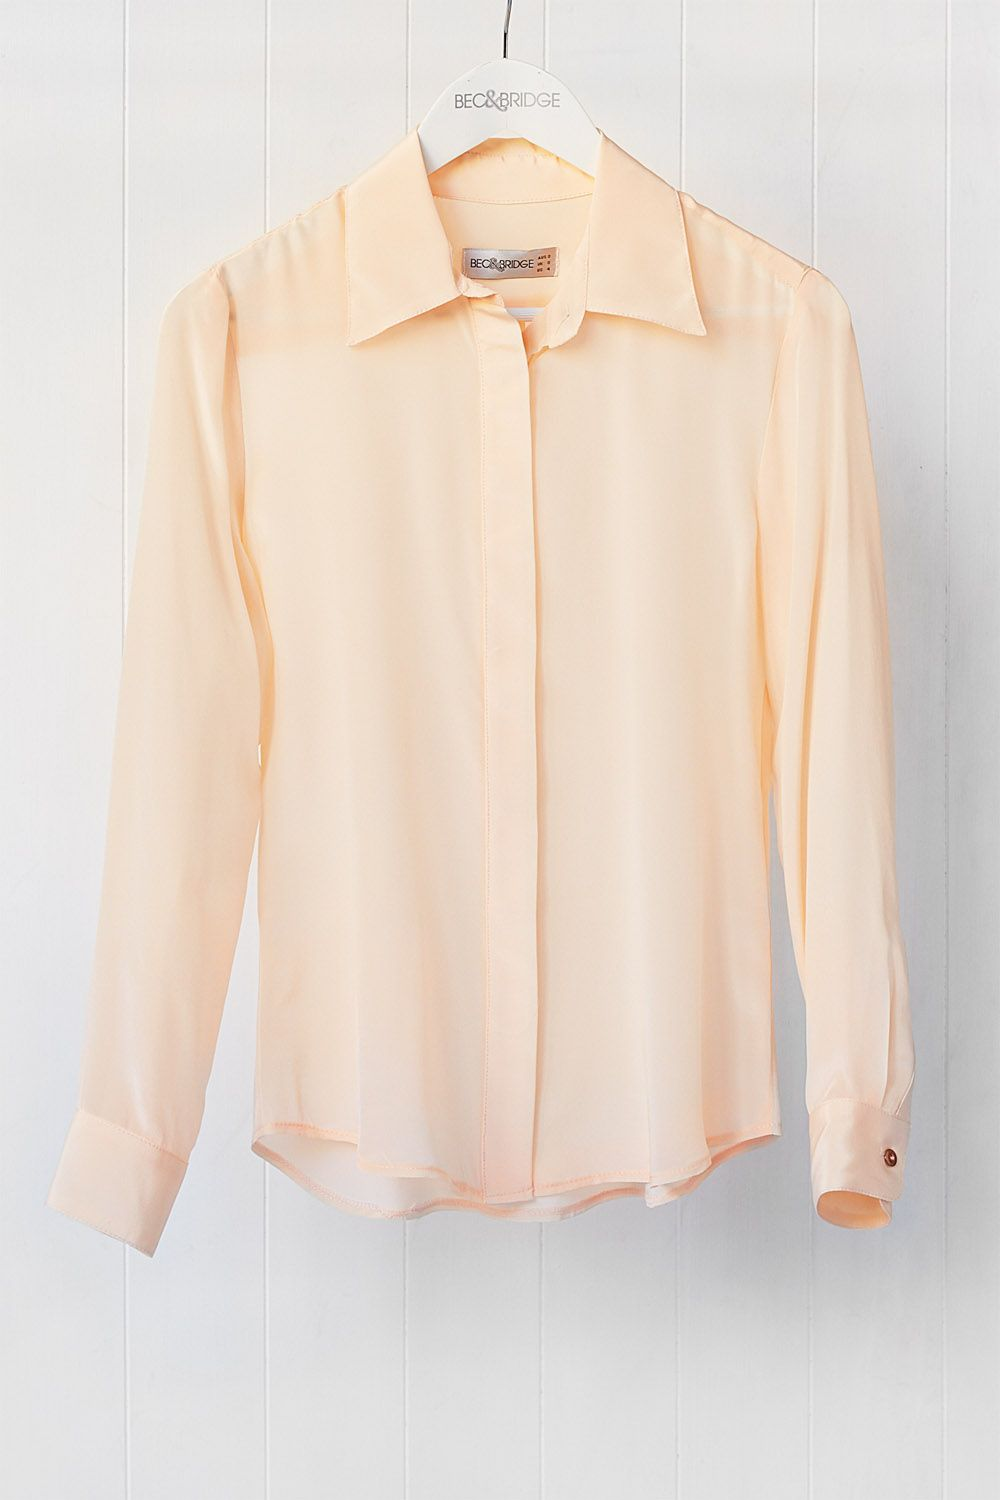 Sabine Silk Shirt in apricot (also available in Mint), available from becandbridge.com.au x